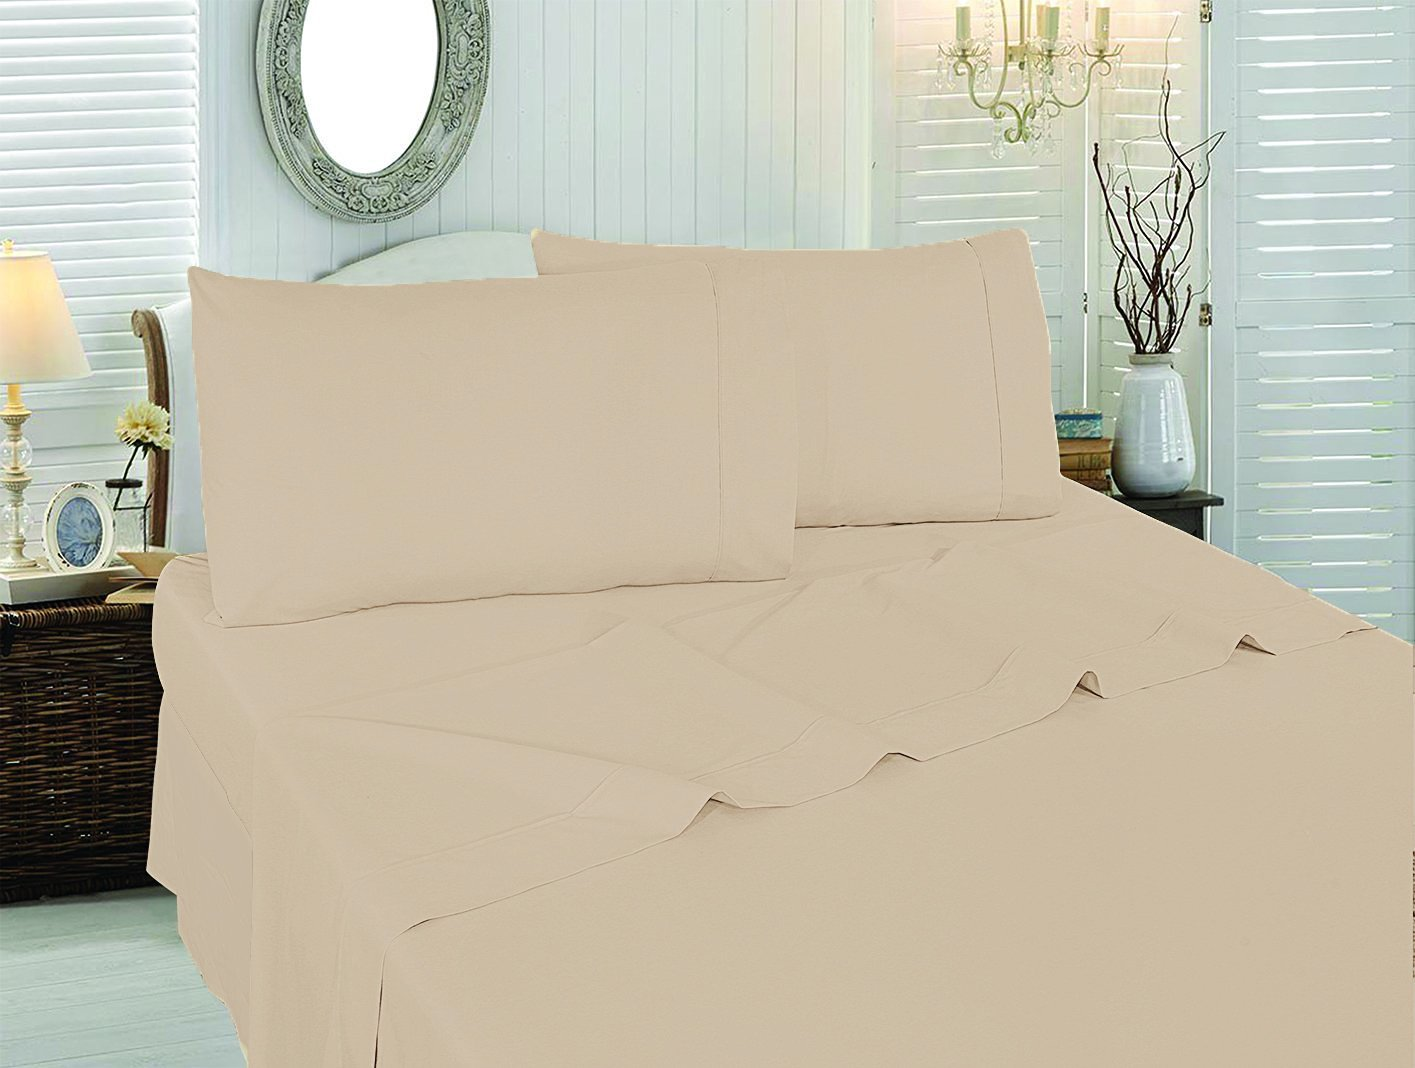 Utopia Bedding Soft Brushed Microfiber Wrinkle Fade and Stain Resistant 4-Piece Queen Bed Sheet Set - Beige